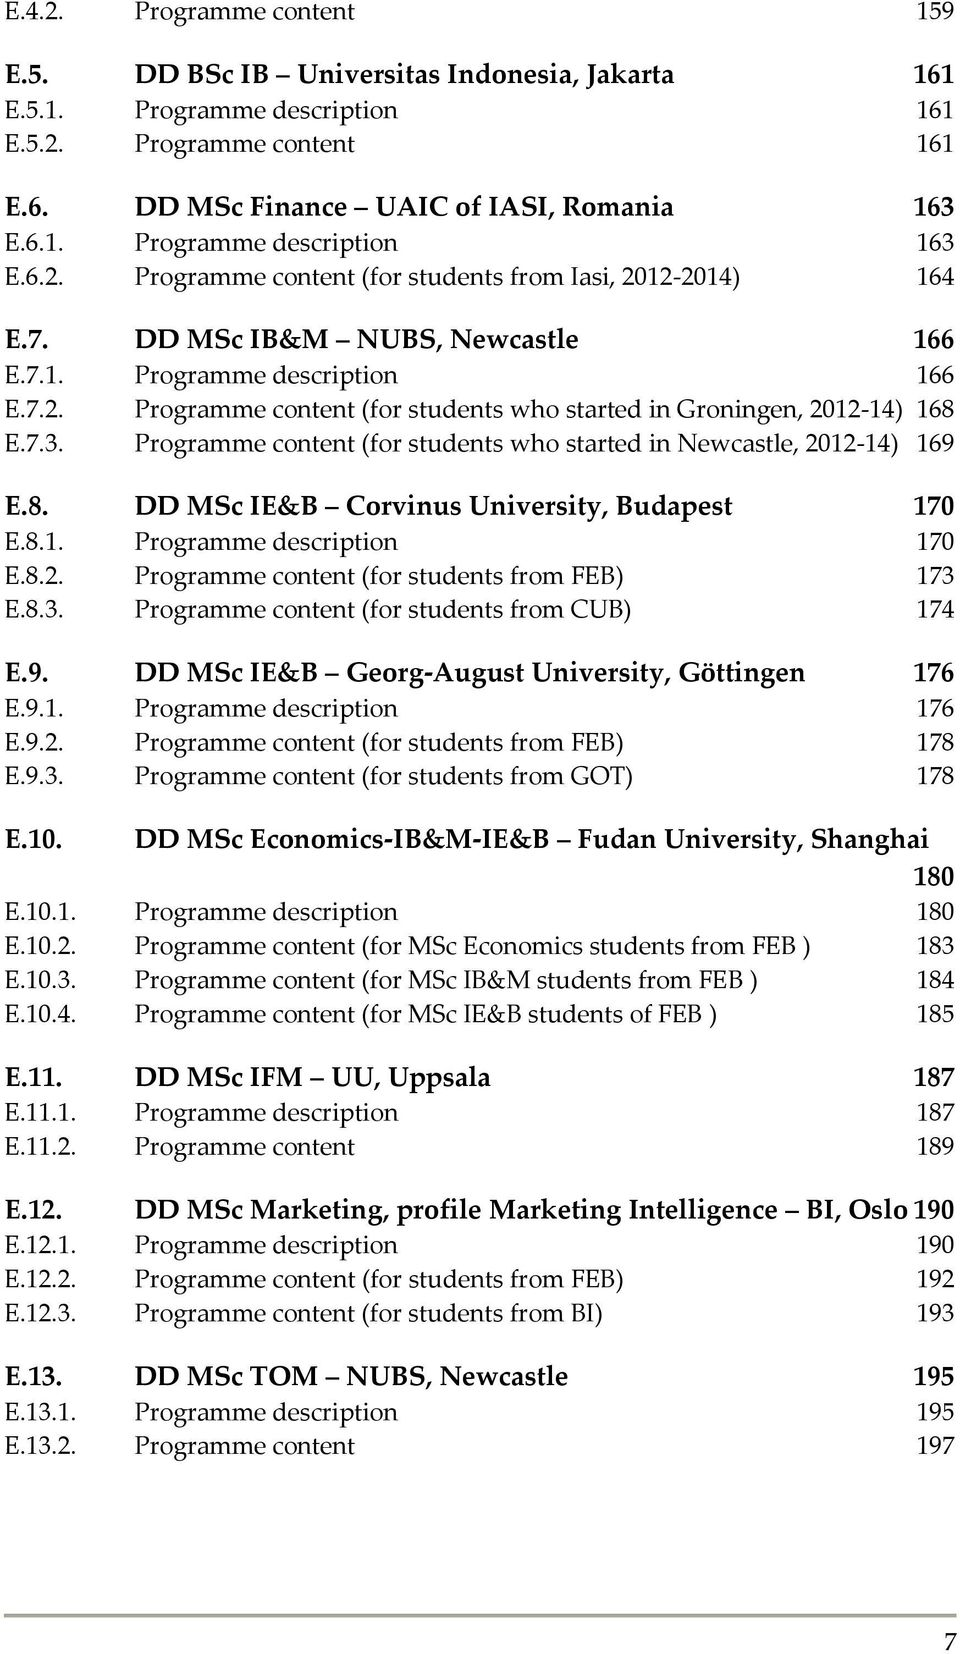 7.3. Programme content (for students who started in Newcastle, 2012-14) 169 E.8. DD MSc IE&B Corvinus University, Budapest 170 E.8.1. Programme description 170 E.8.2. Programme content (for students from FEB) 173 E.